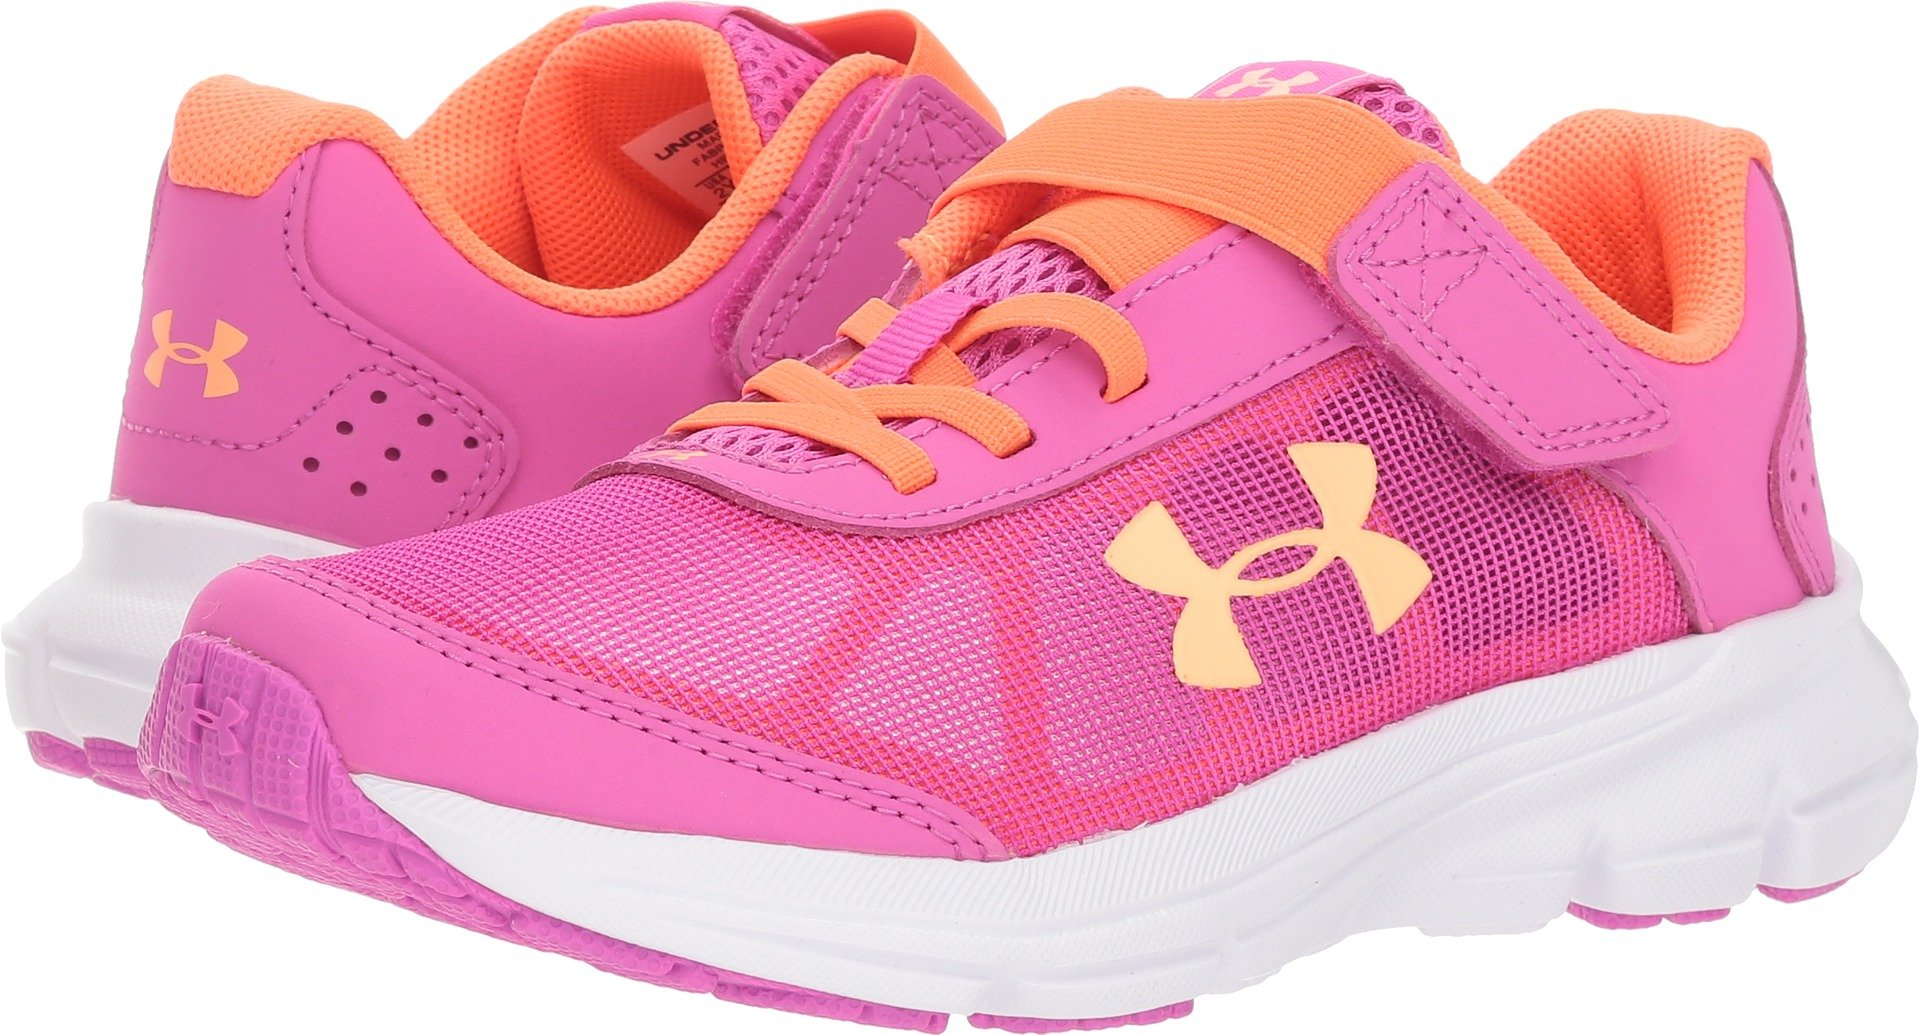 Under Armour Girls' Pre School Rave 2 Adjustable Closure Sneaker (502)/Fluo Fuchsia, 13K